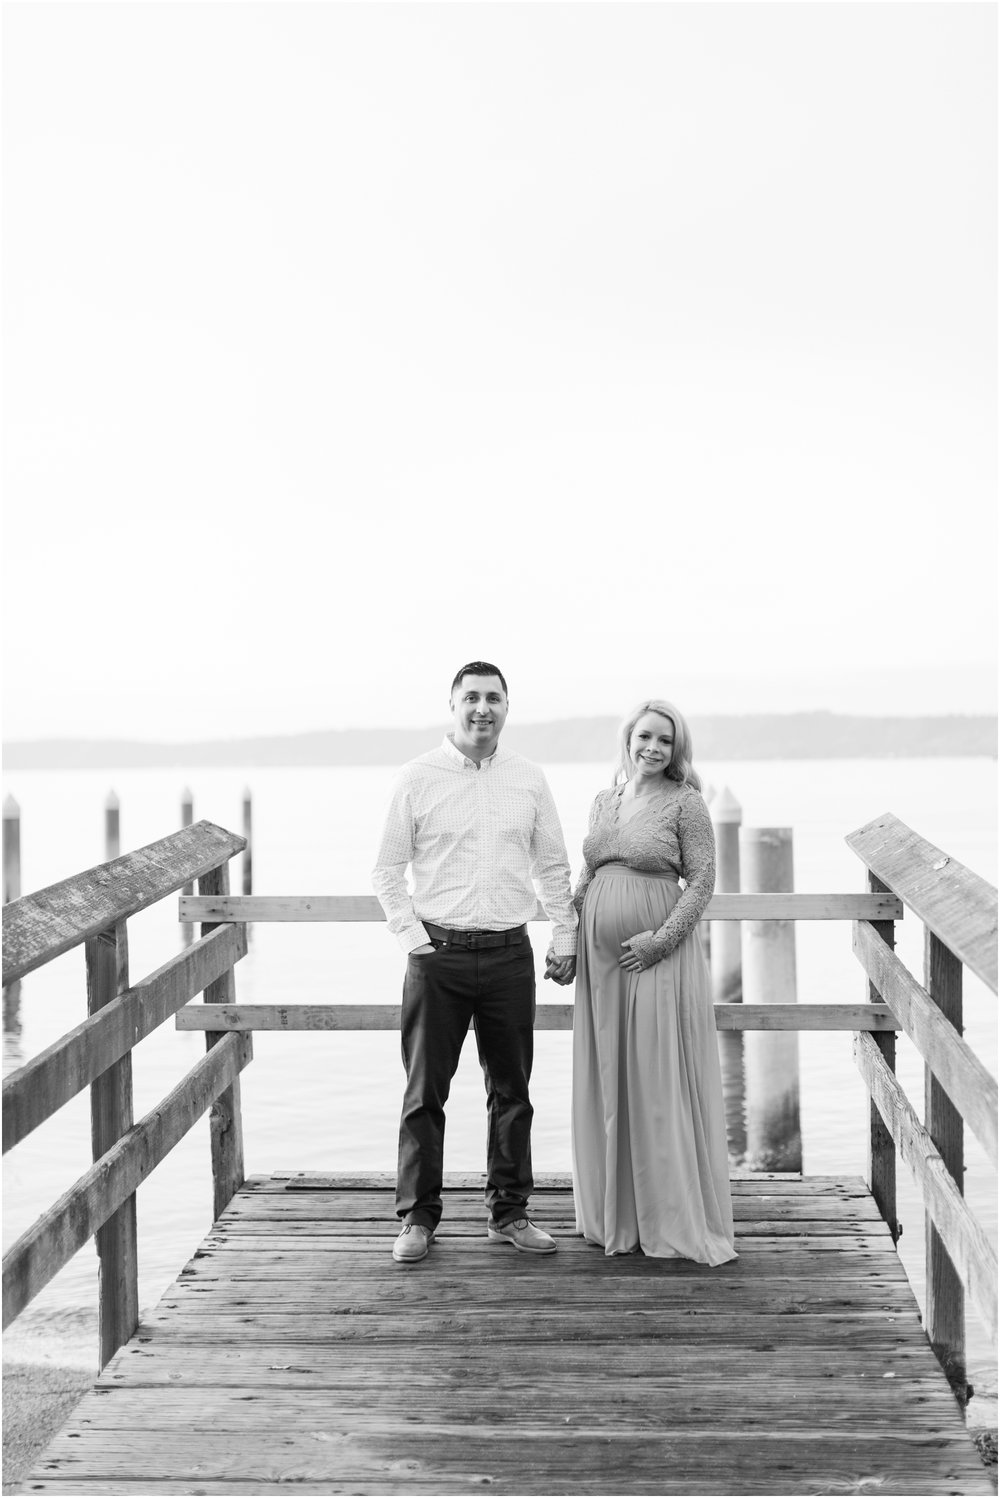 Maternity photos by Briana Calderon Photography based in the Greater Seattle & Tacoma, WA_0978.jpg